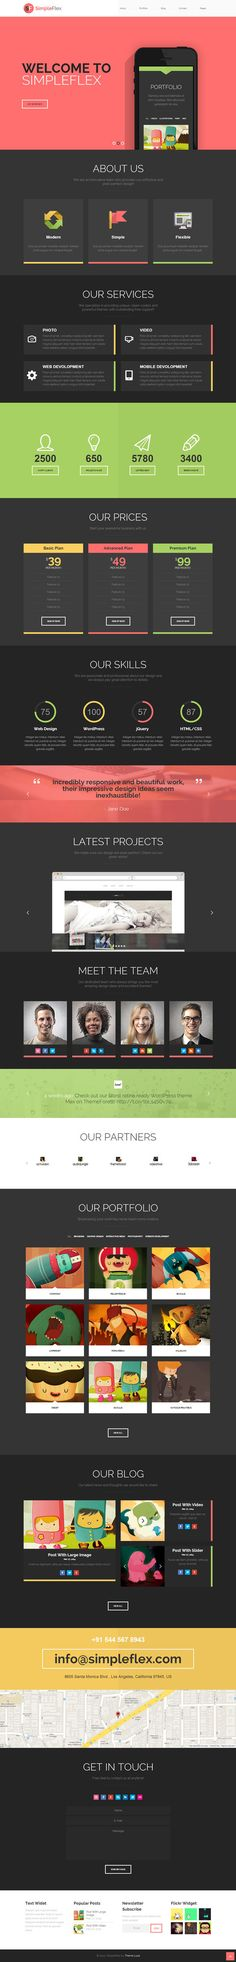 Flat One Page WordPress Theme in Web Design